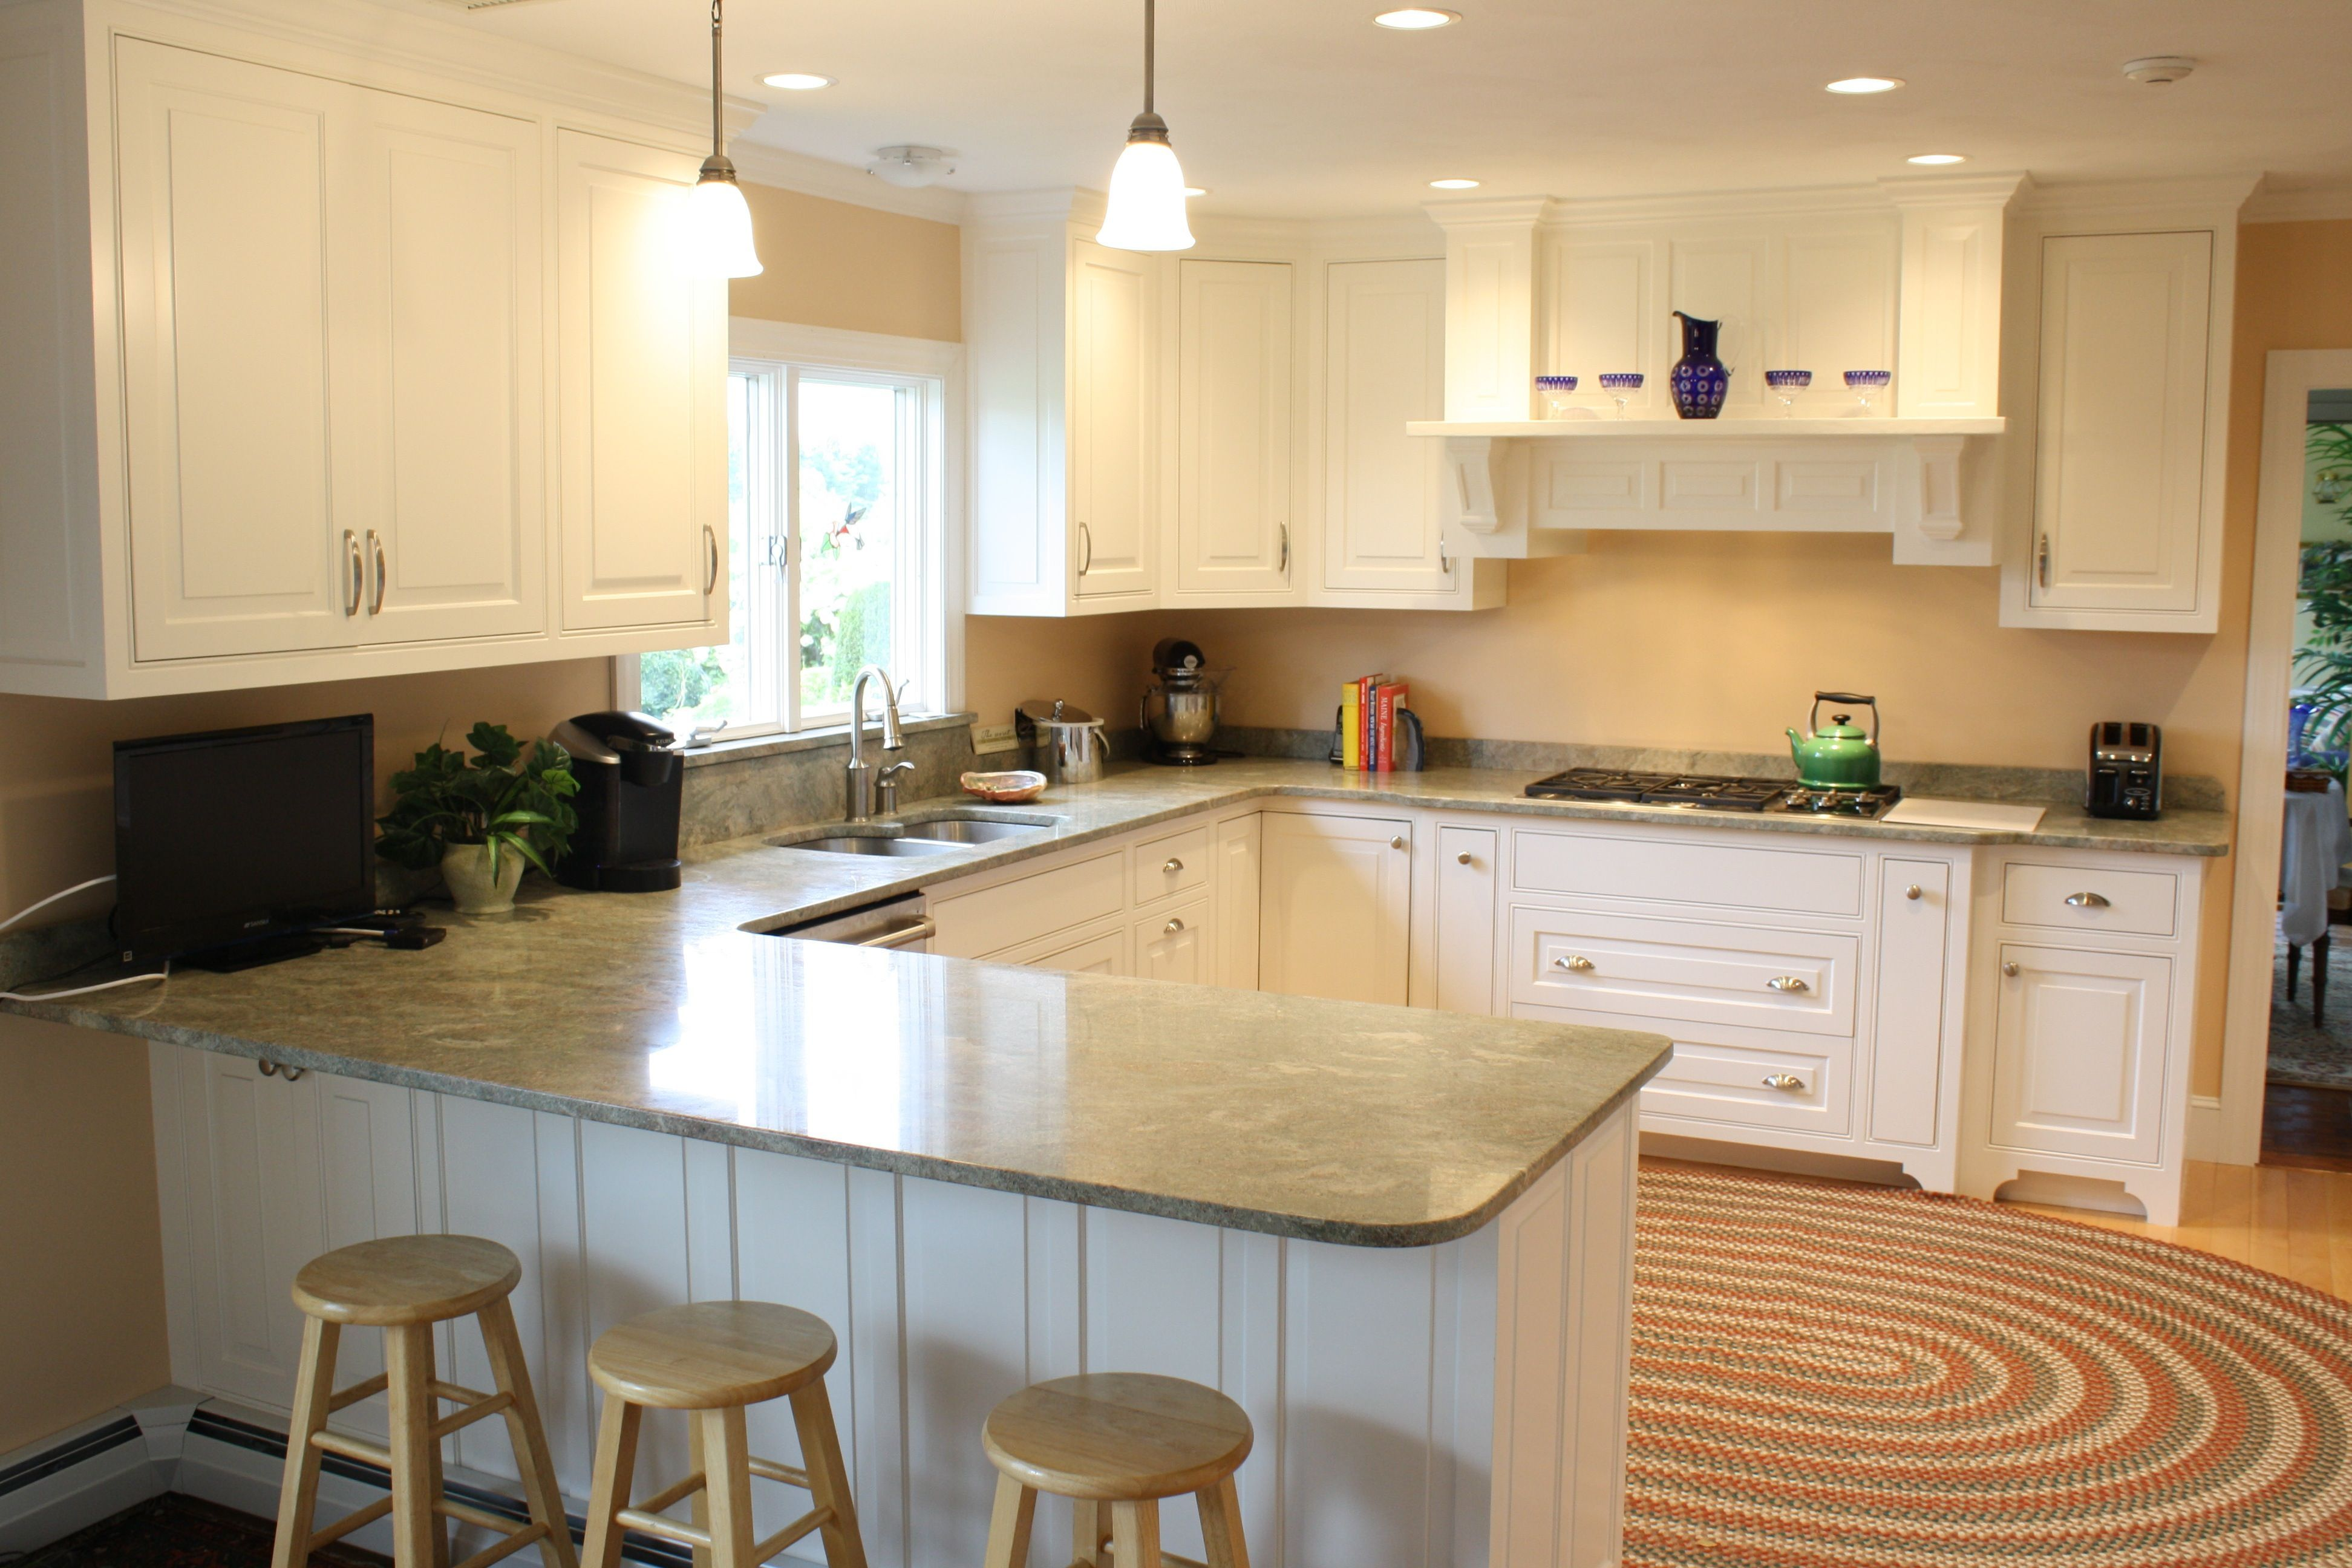 10 Considerable Kitchen Without Backsplash Inspirations Kitchen